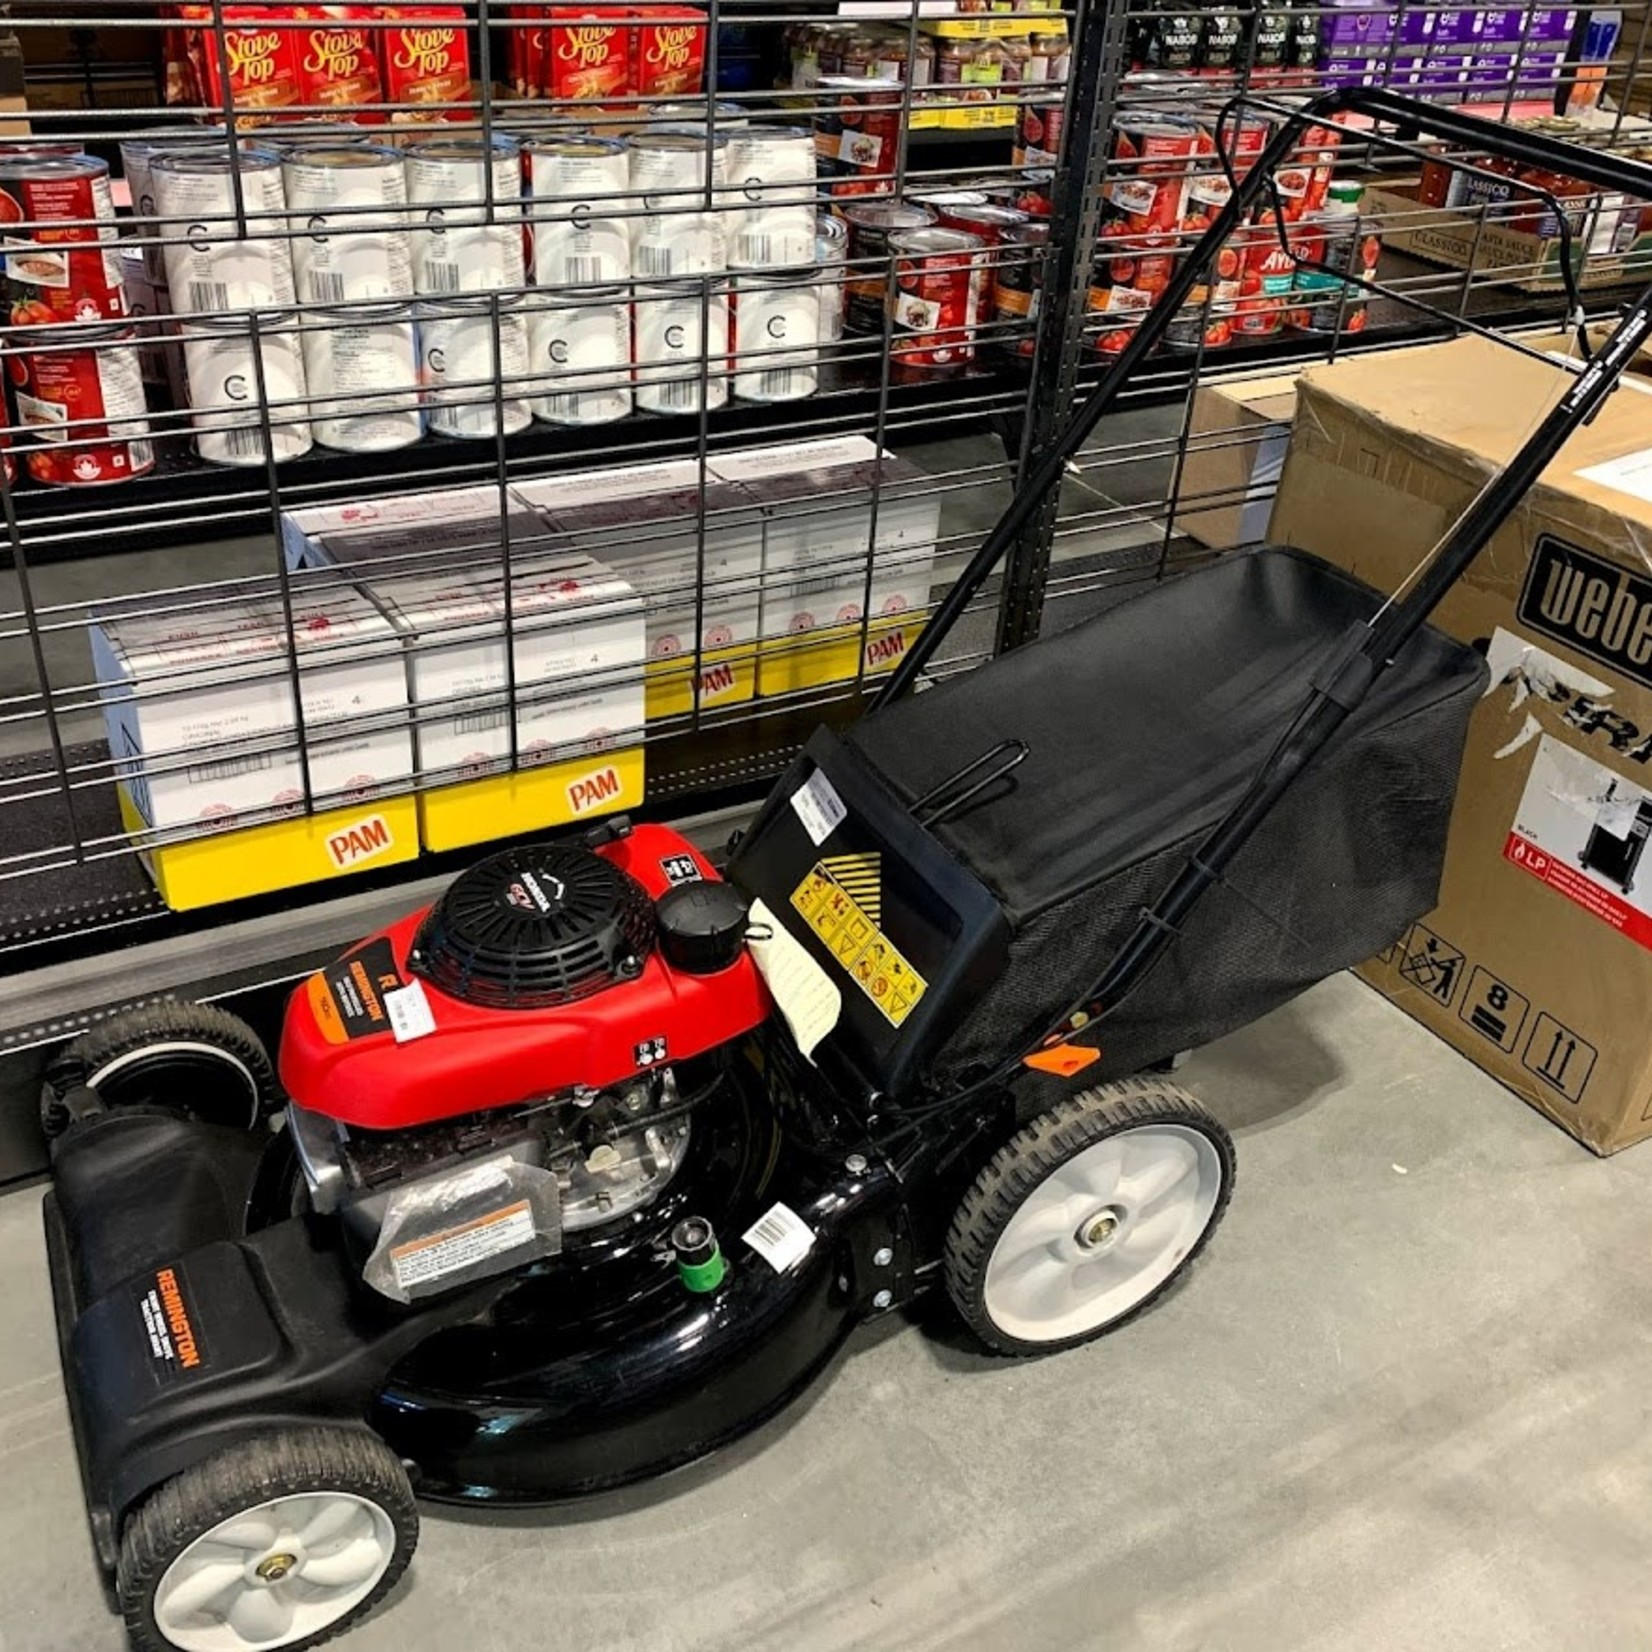 """Remington 21"""" 160cc FWD Self-Propelled Lawn Mower with Honda motor *Open box, Great condition"""